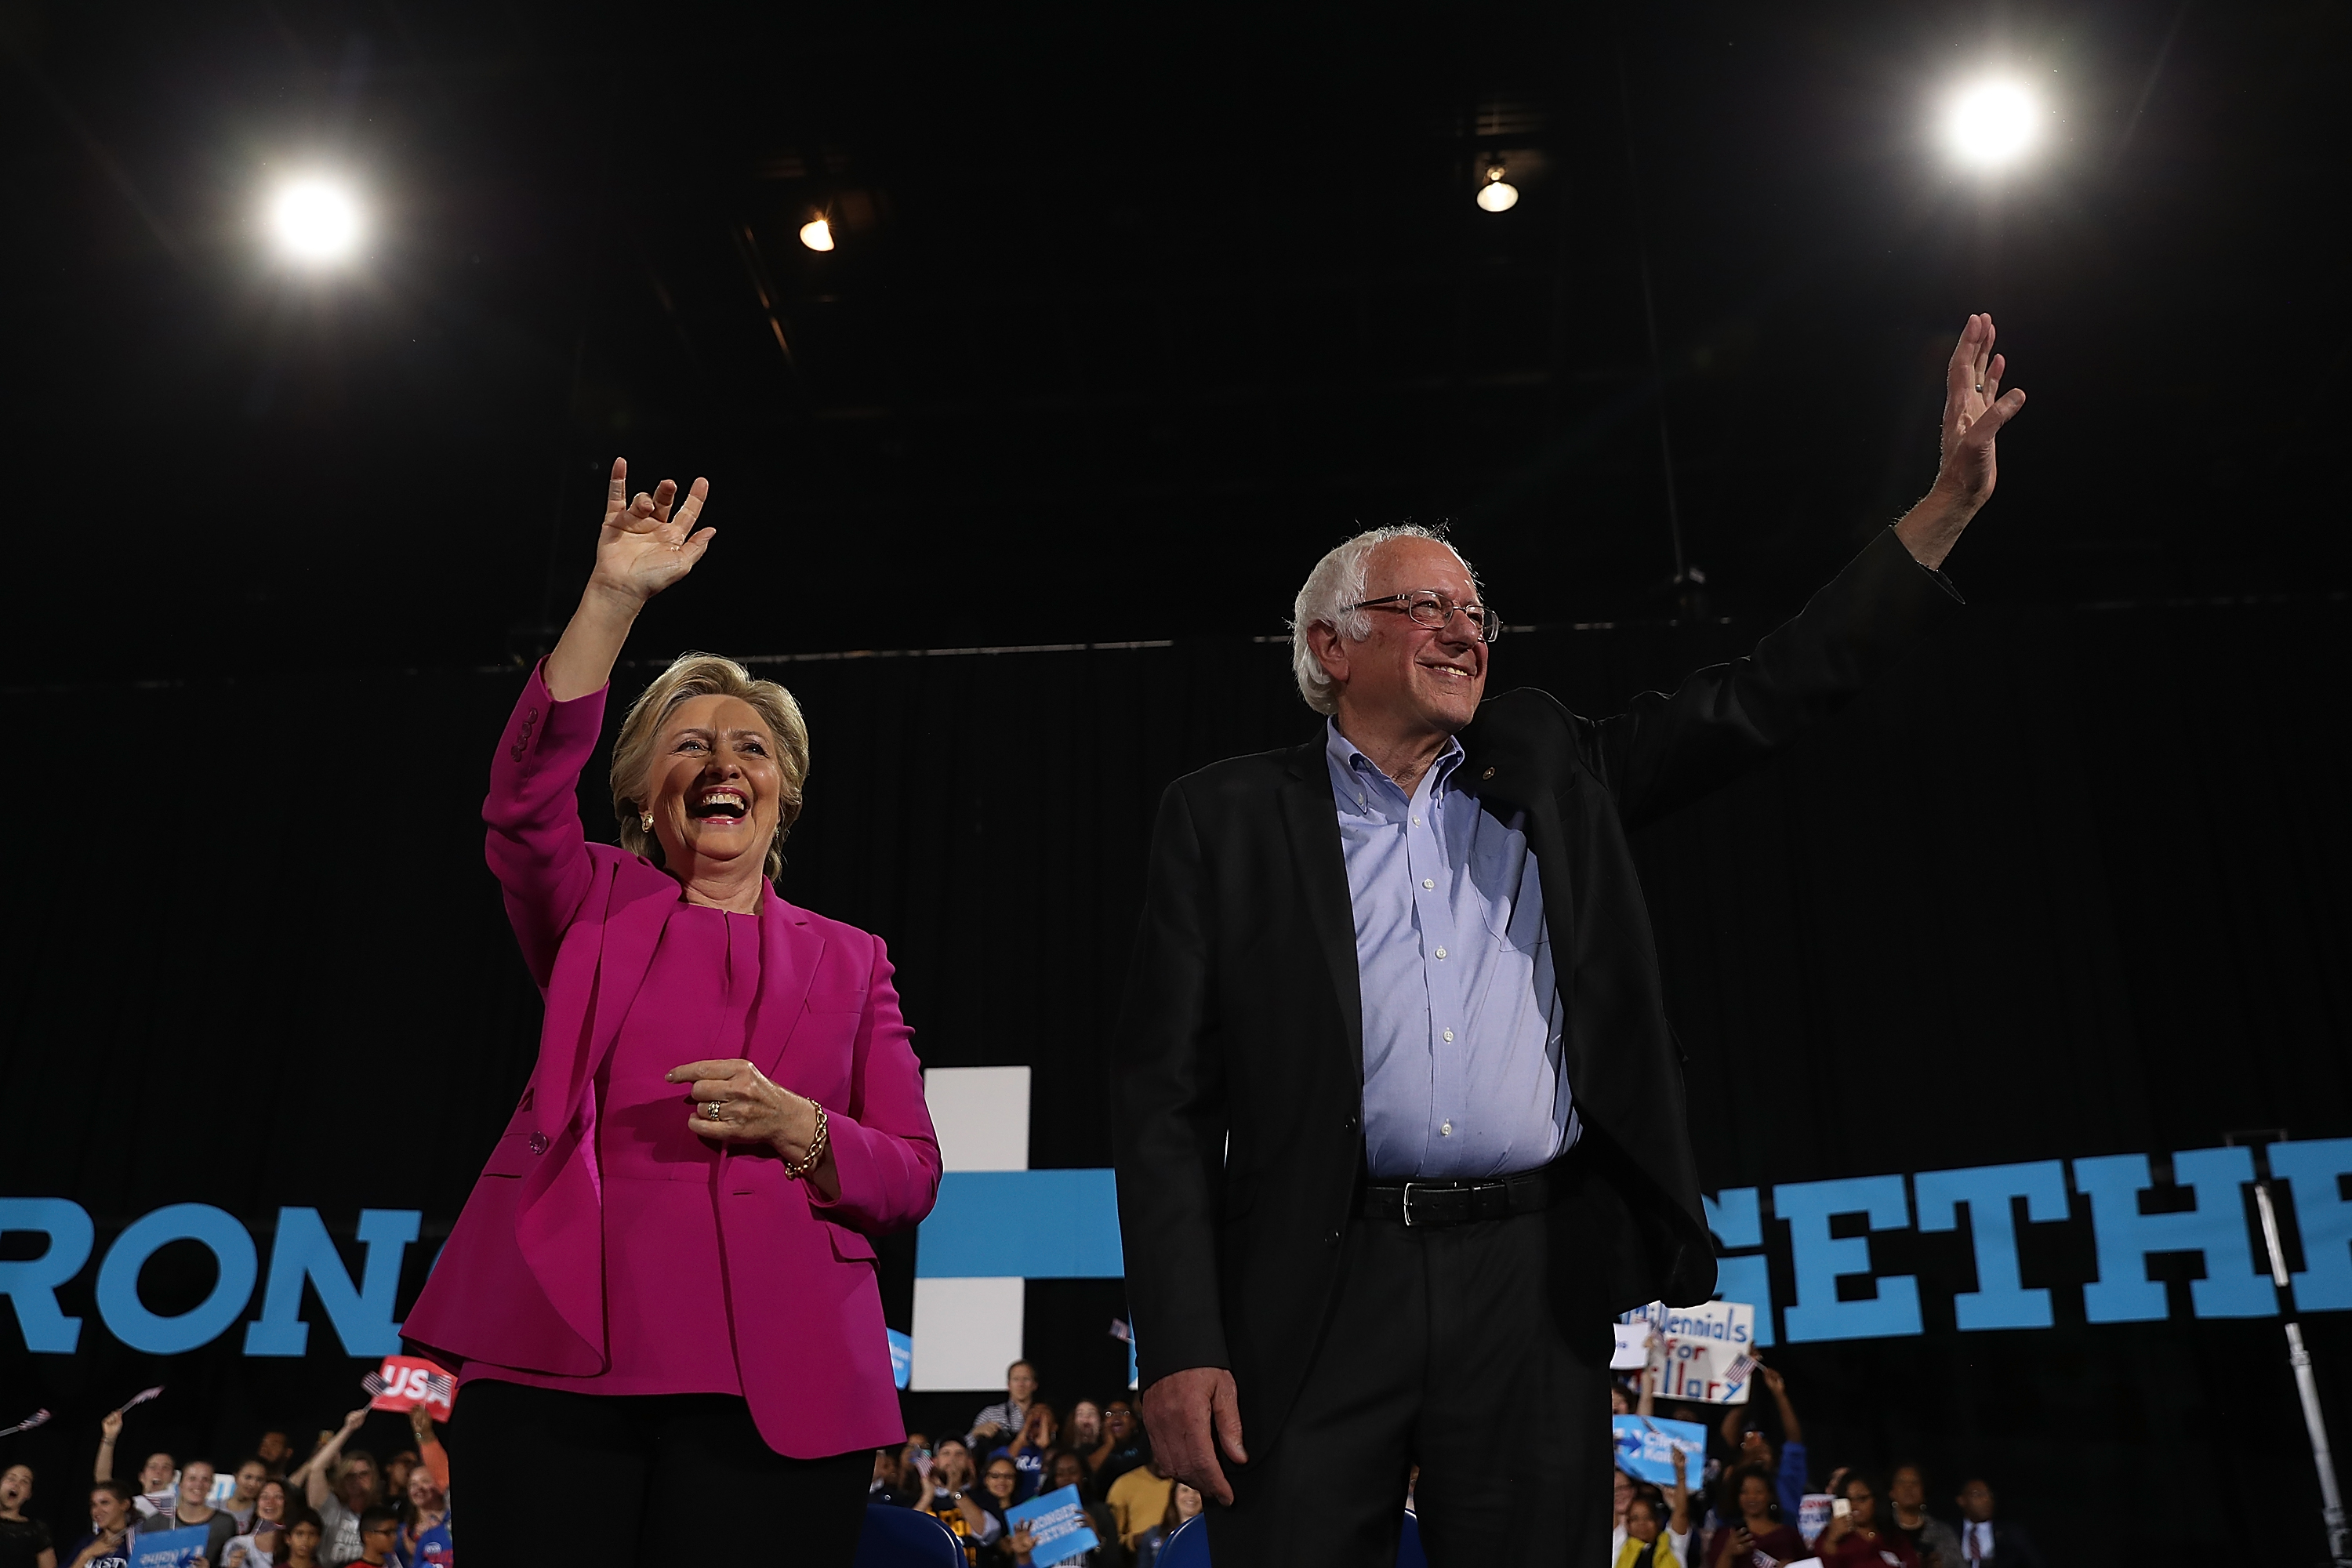 Hillary Clinton and Bernie Sanders stand on a stage and wave to the crowd.